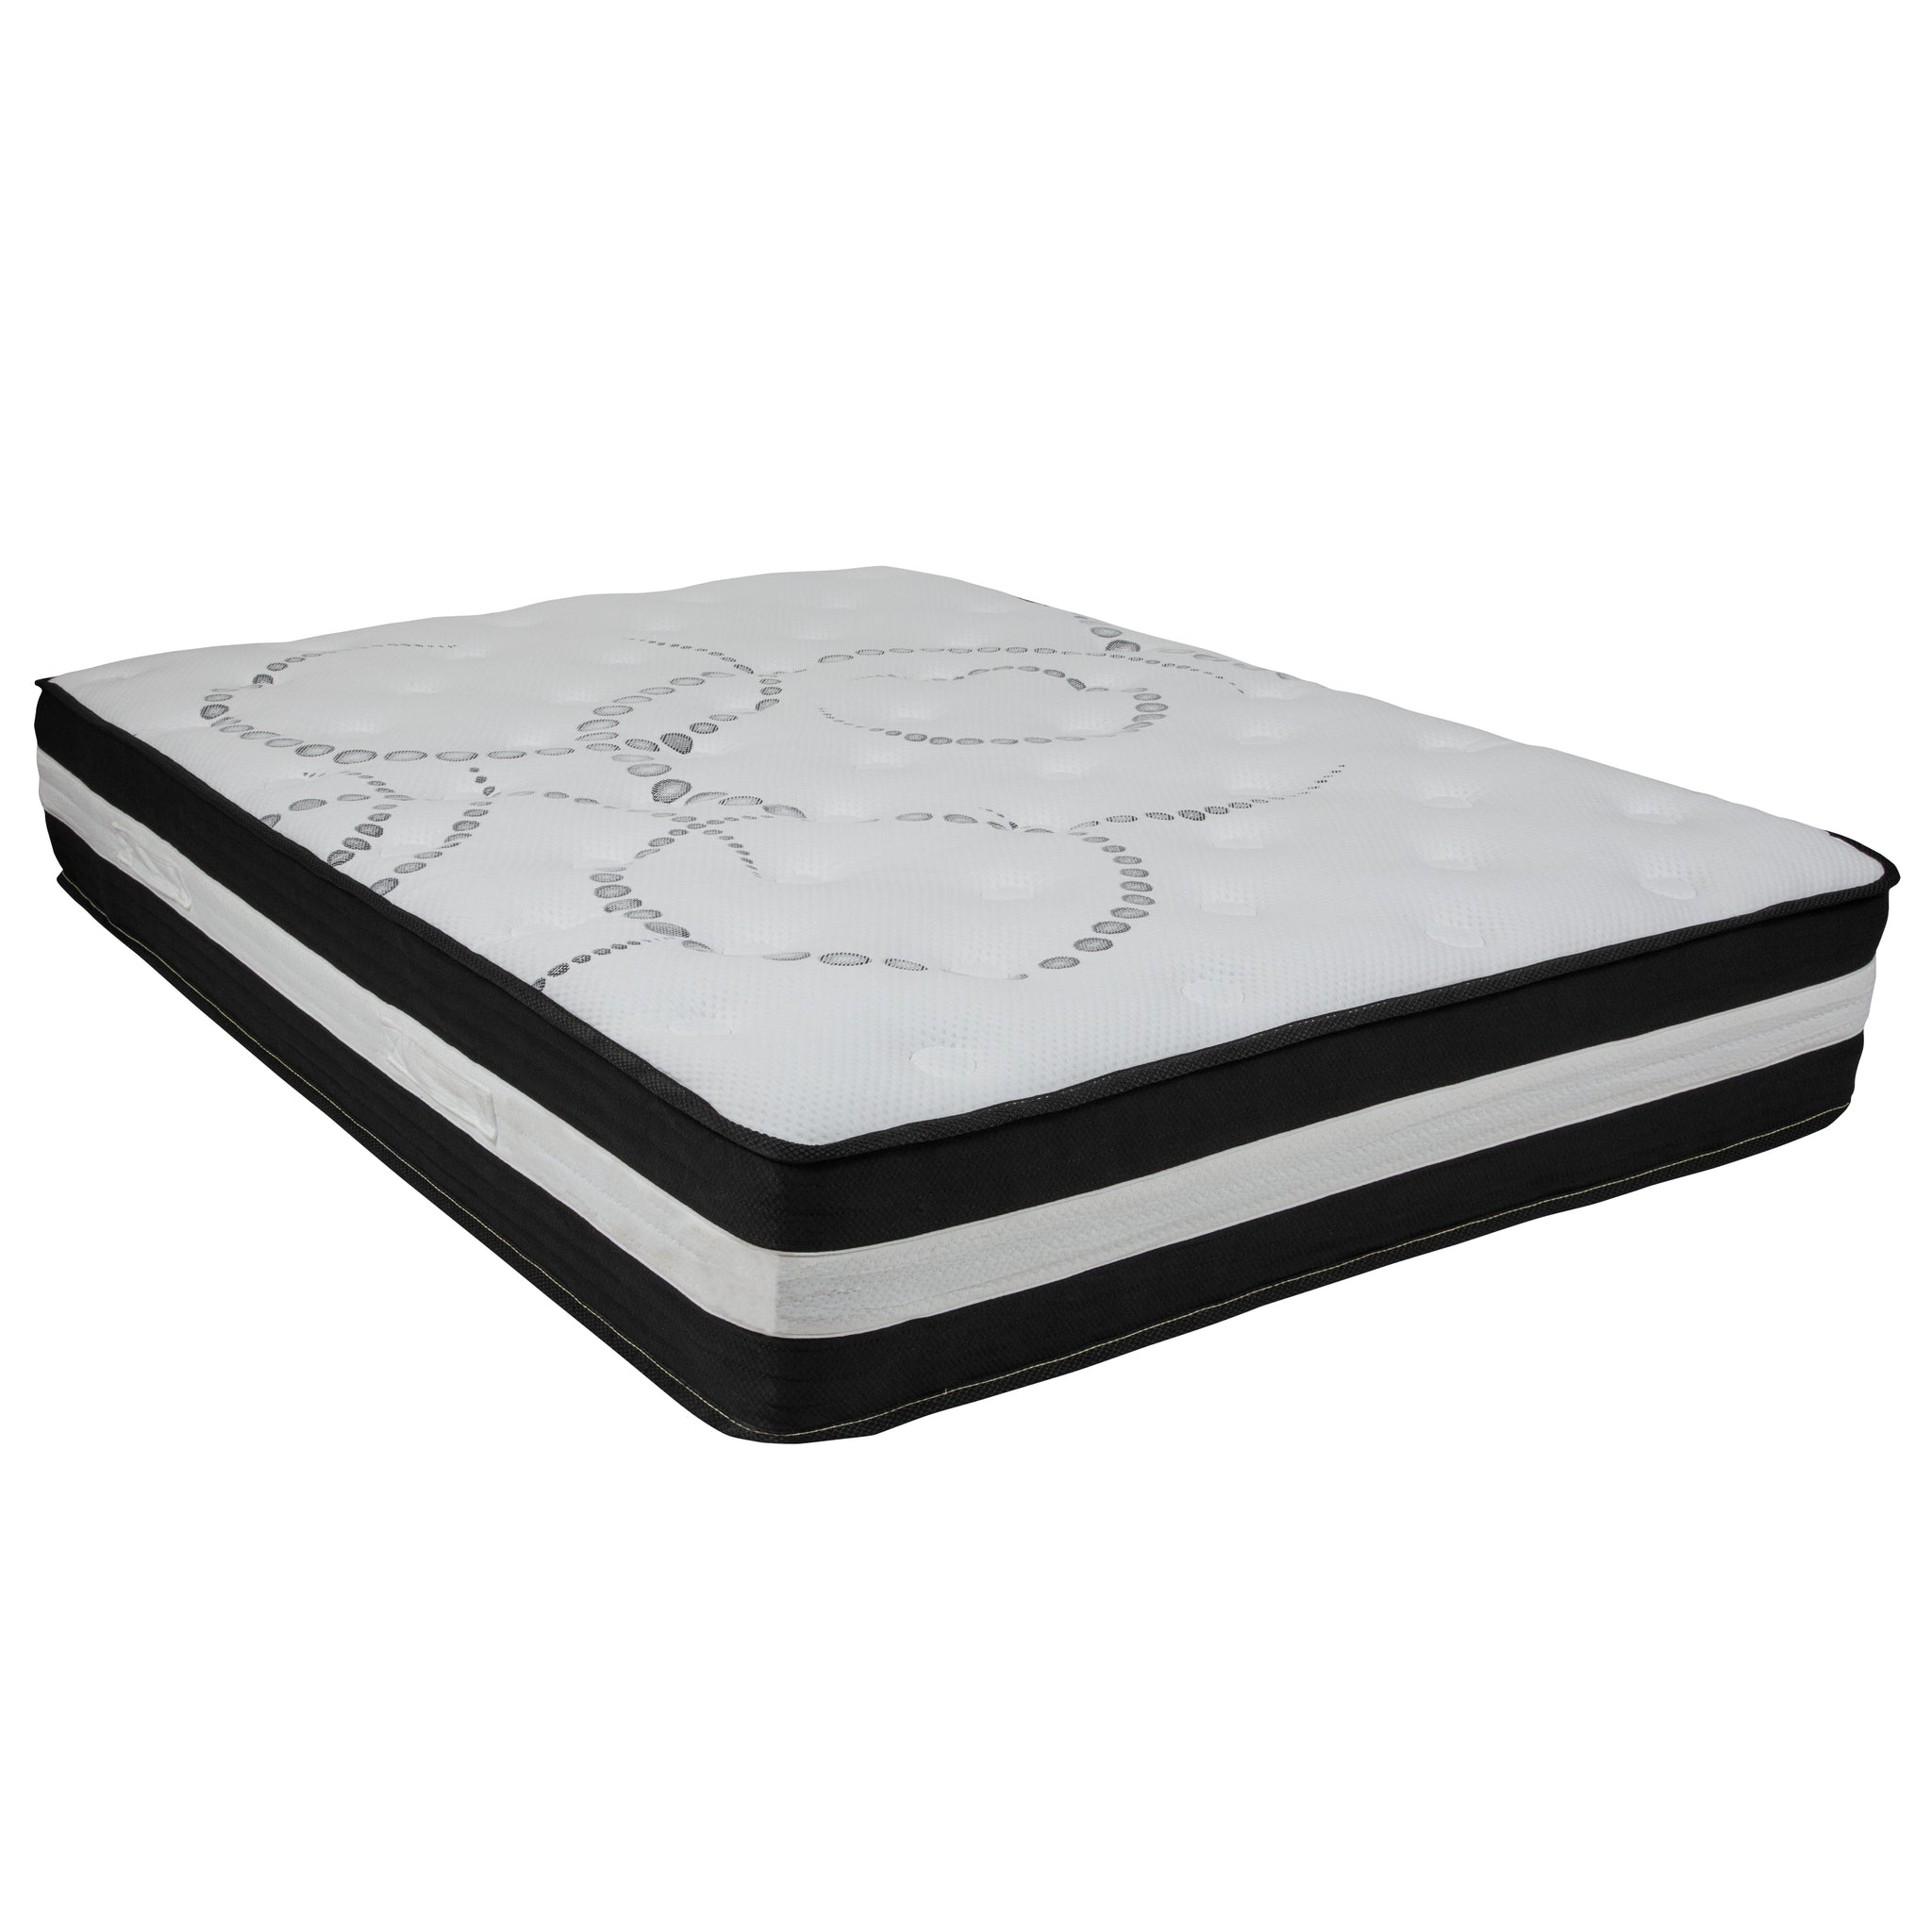 Capri Comfortable Sleep 12 Inch Foam and Pocket Spring Mattress, Full in a Box: White